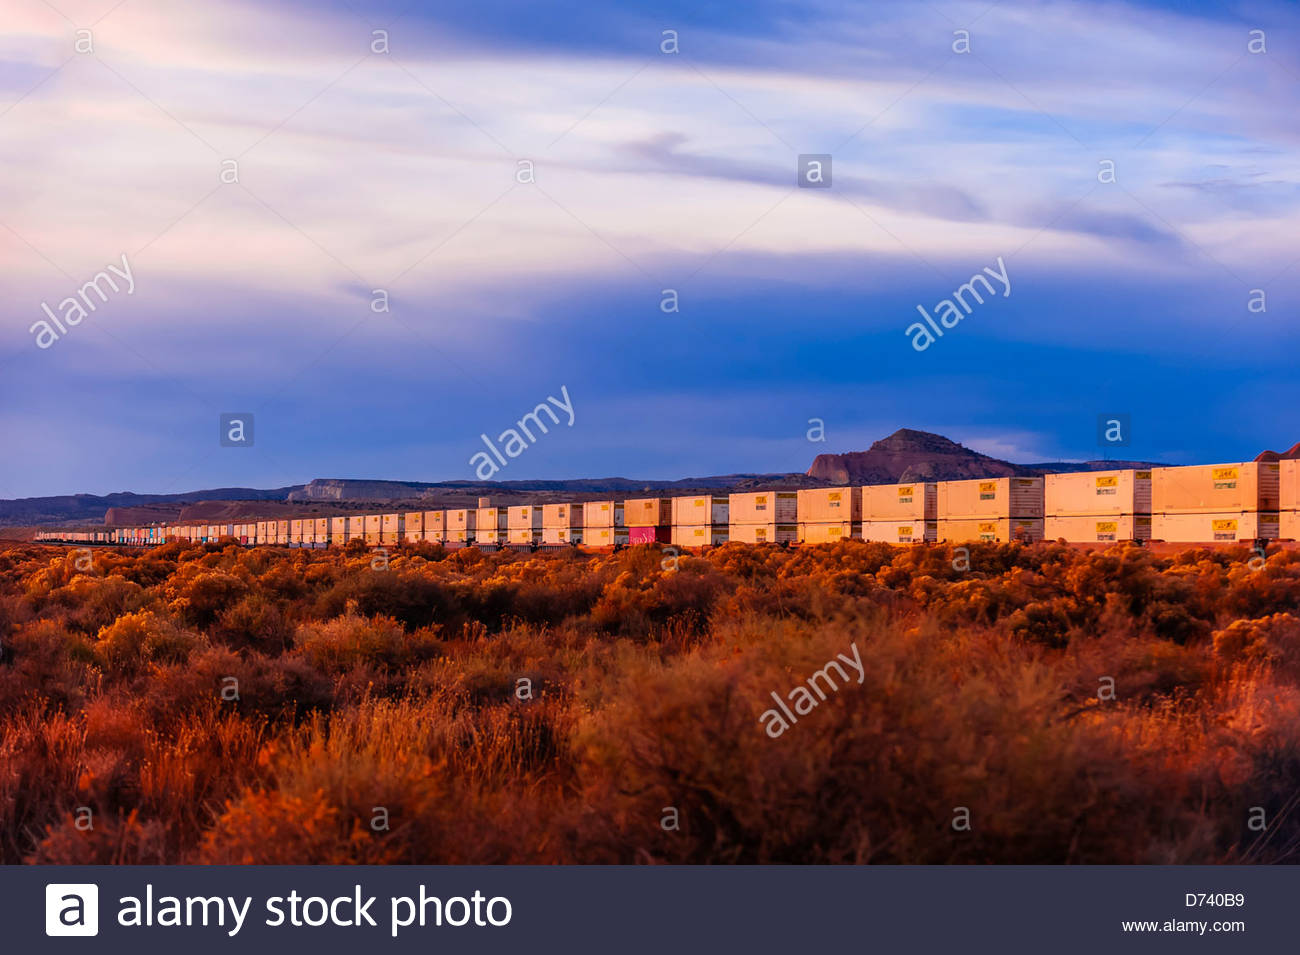 Freight train carrying containers, near Gallup, New Mexico USA. - Stock Image